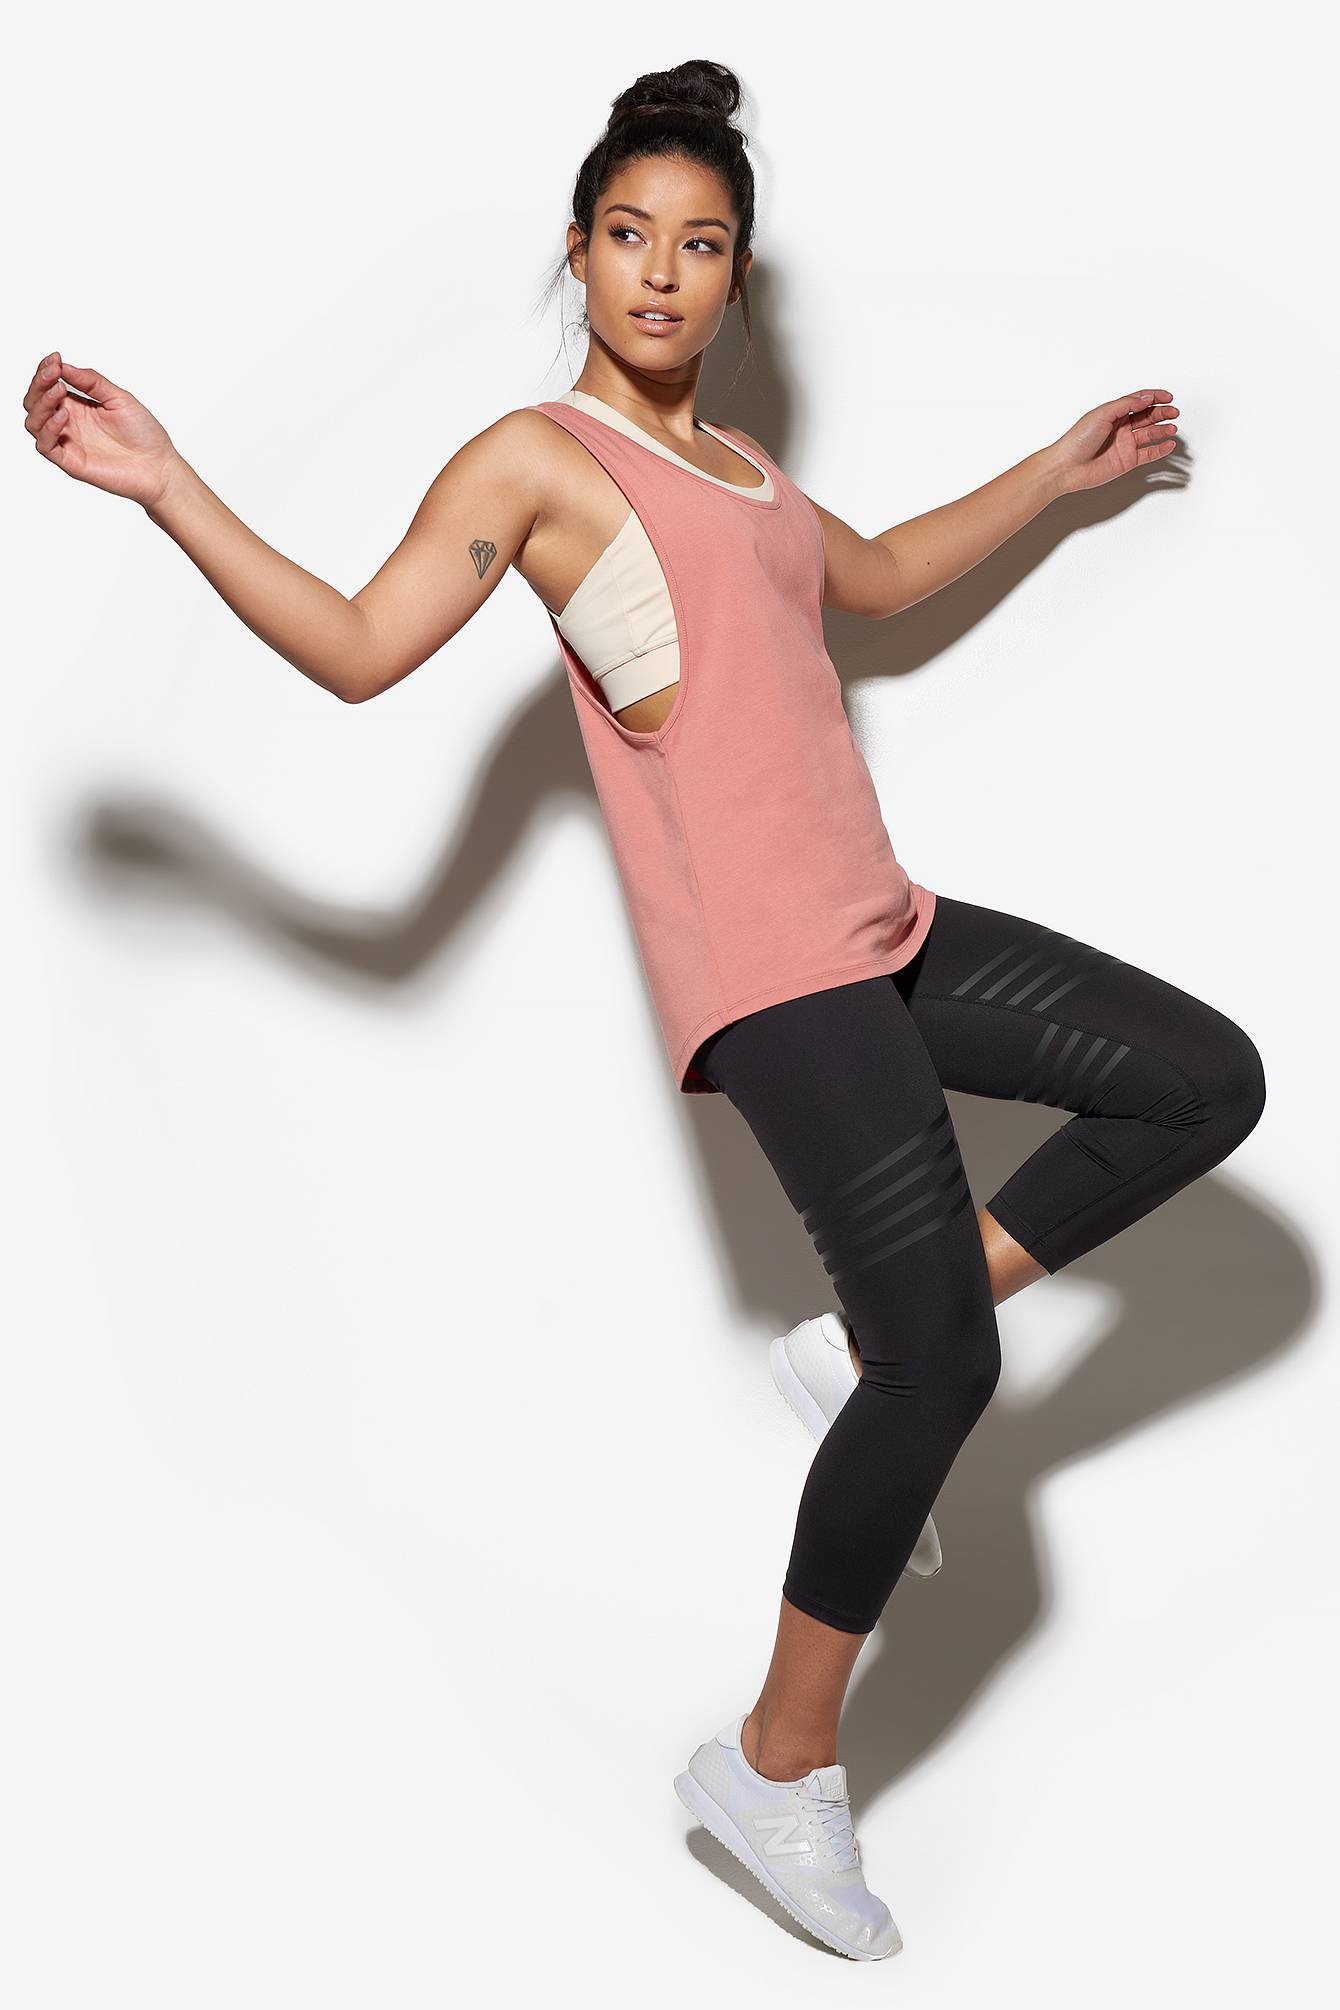 TONED by Ashy Bines A-Line Toned Tank Top - Pink